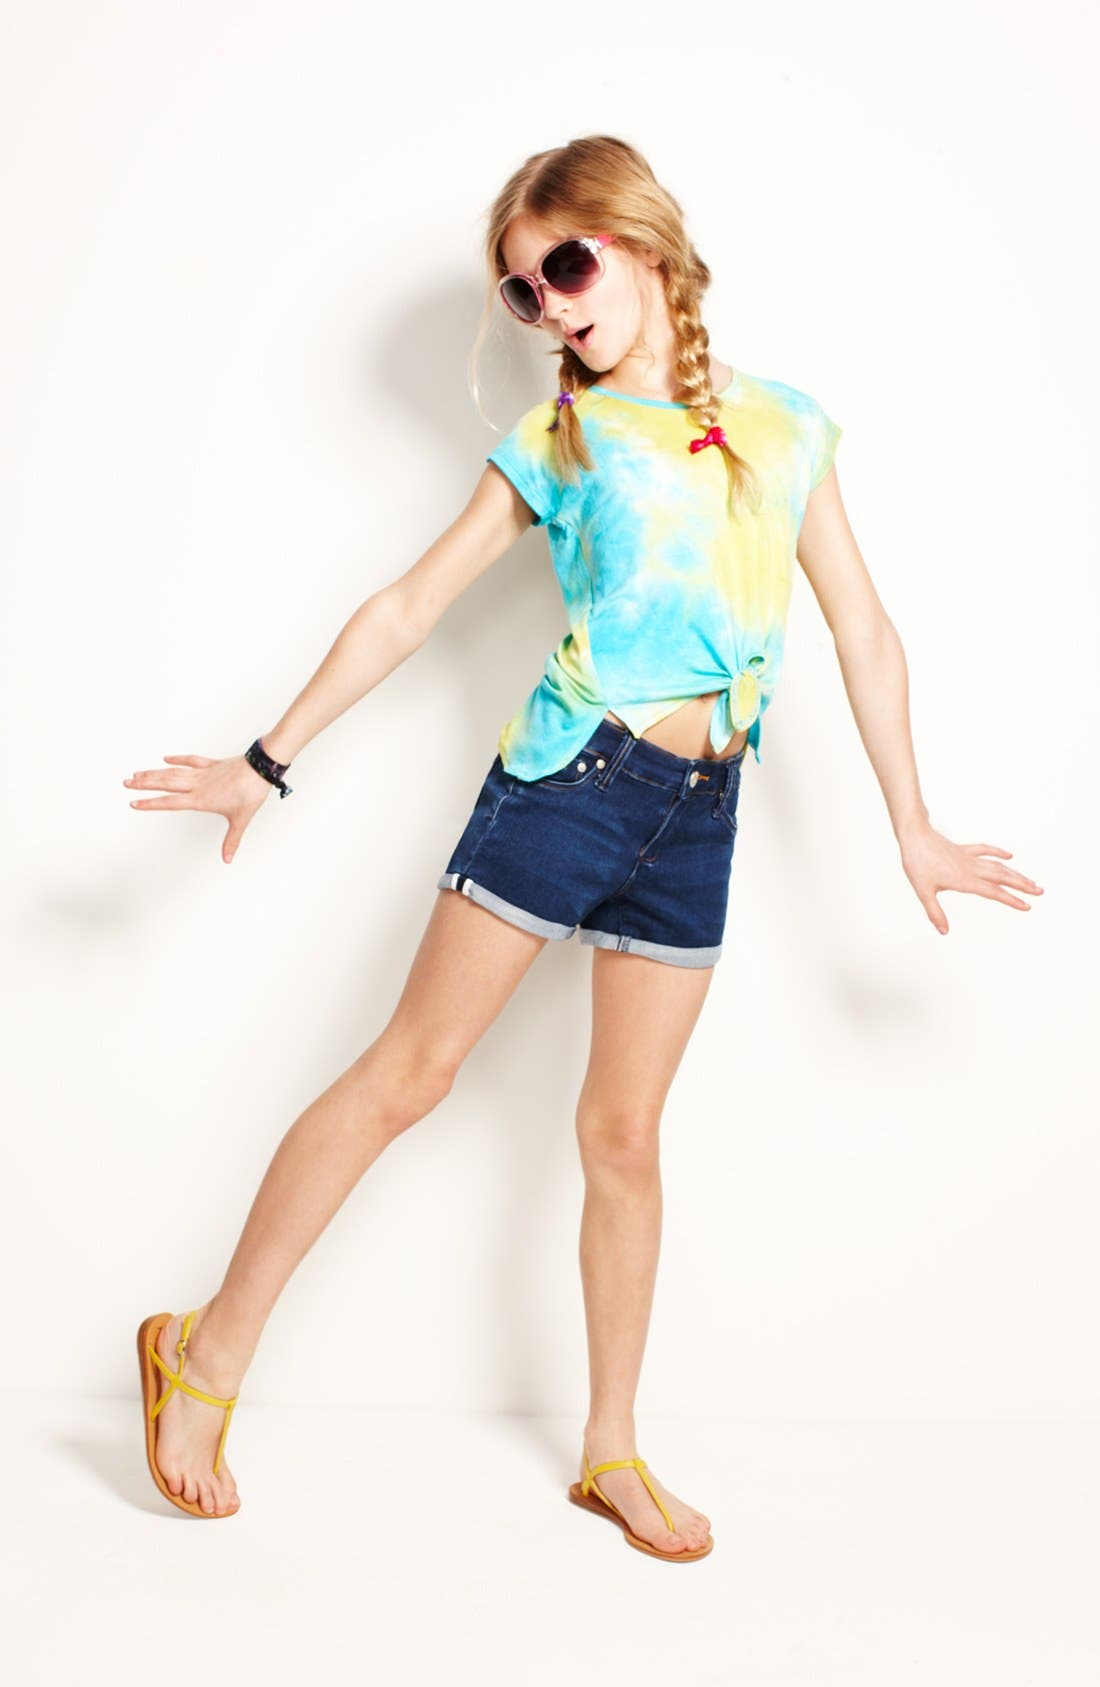 Alternate Image 1 Selected - Mia Chica Top & Tractr Shorts (Big Girls)